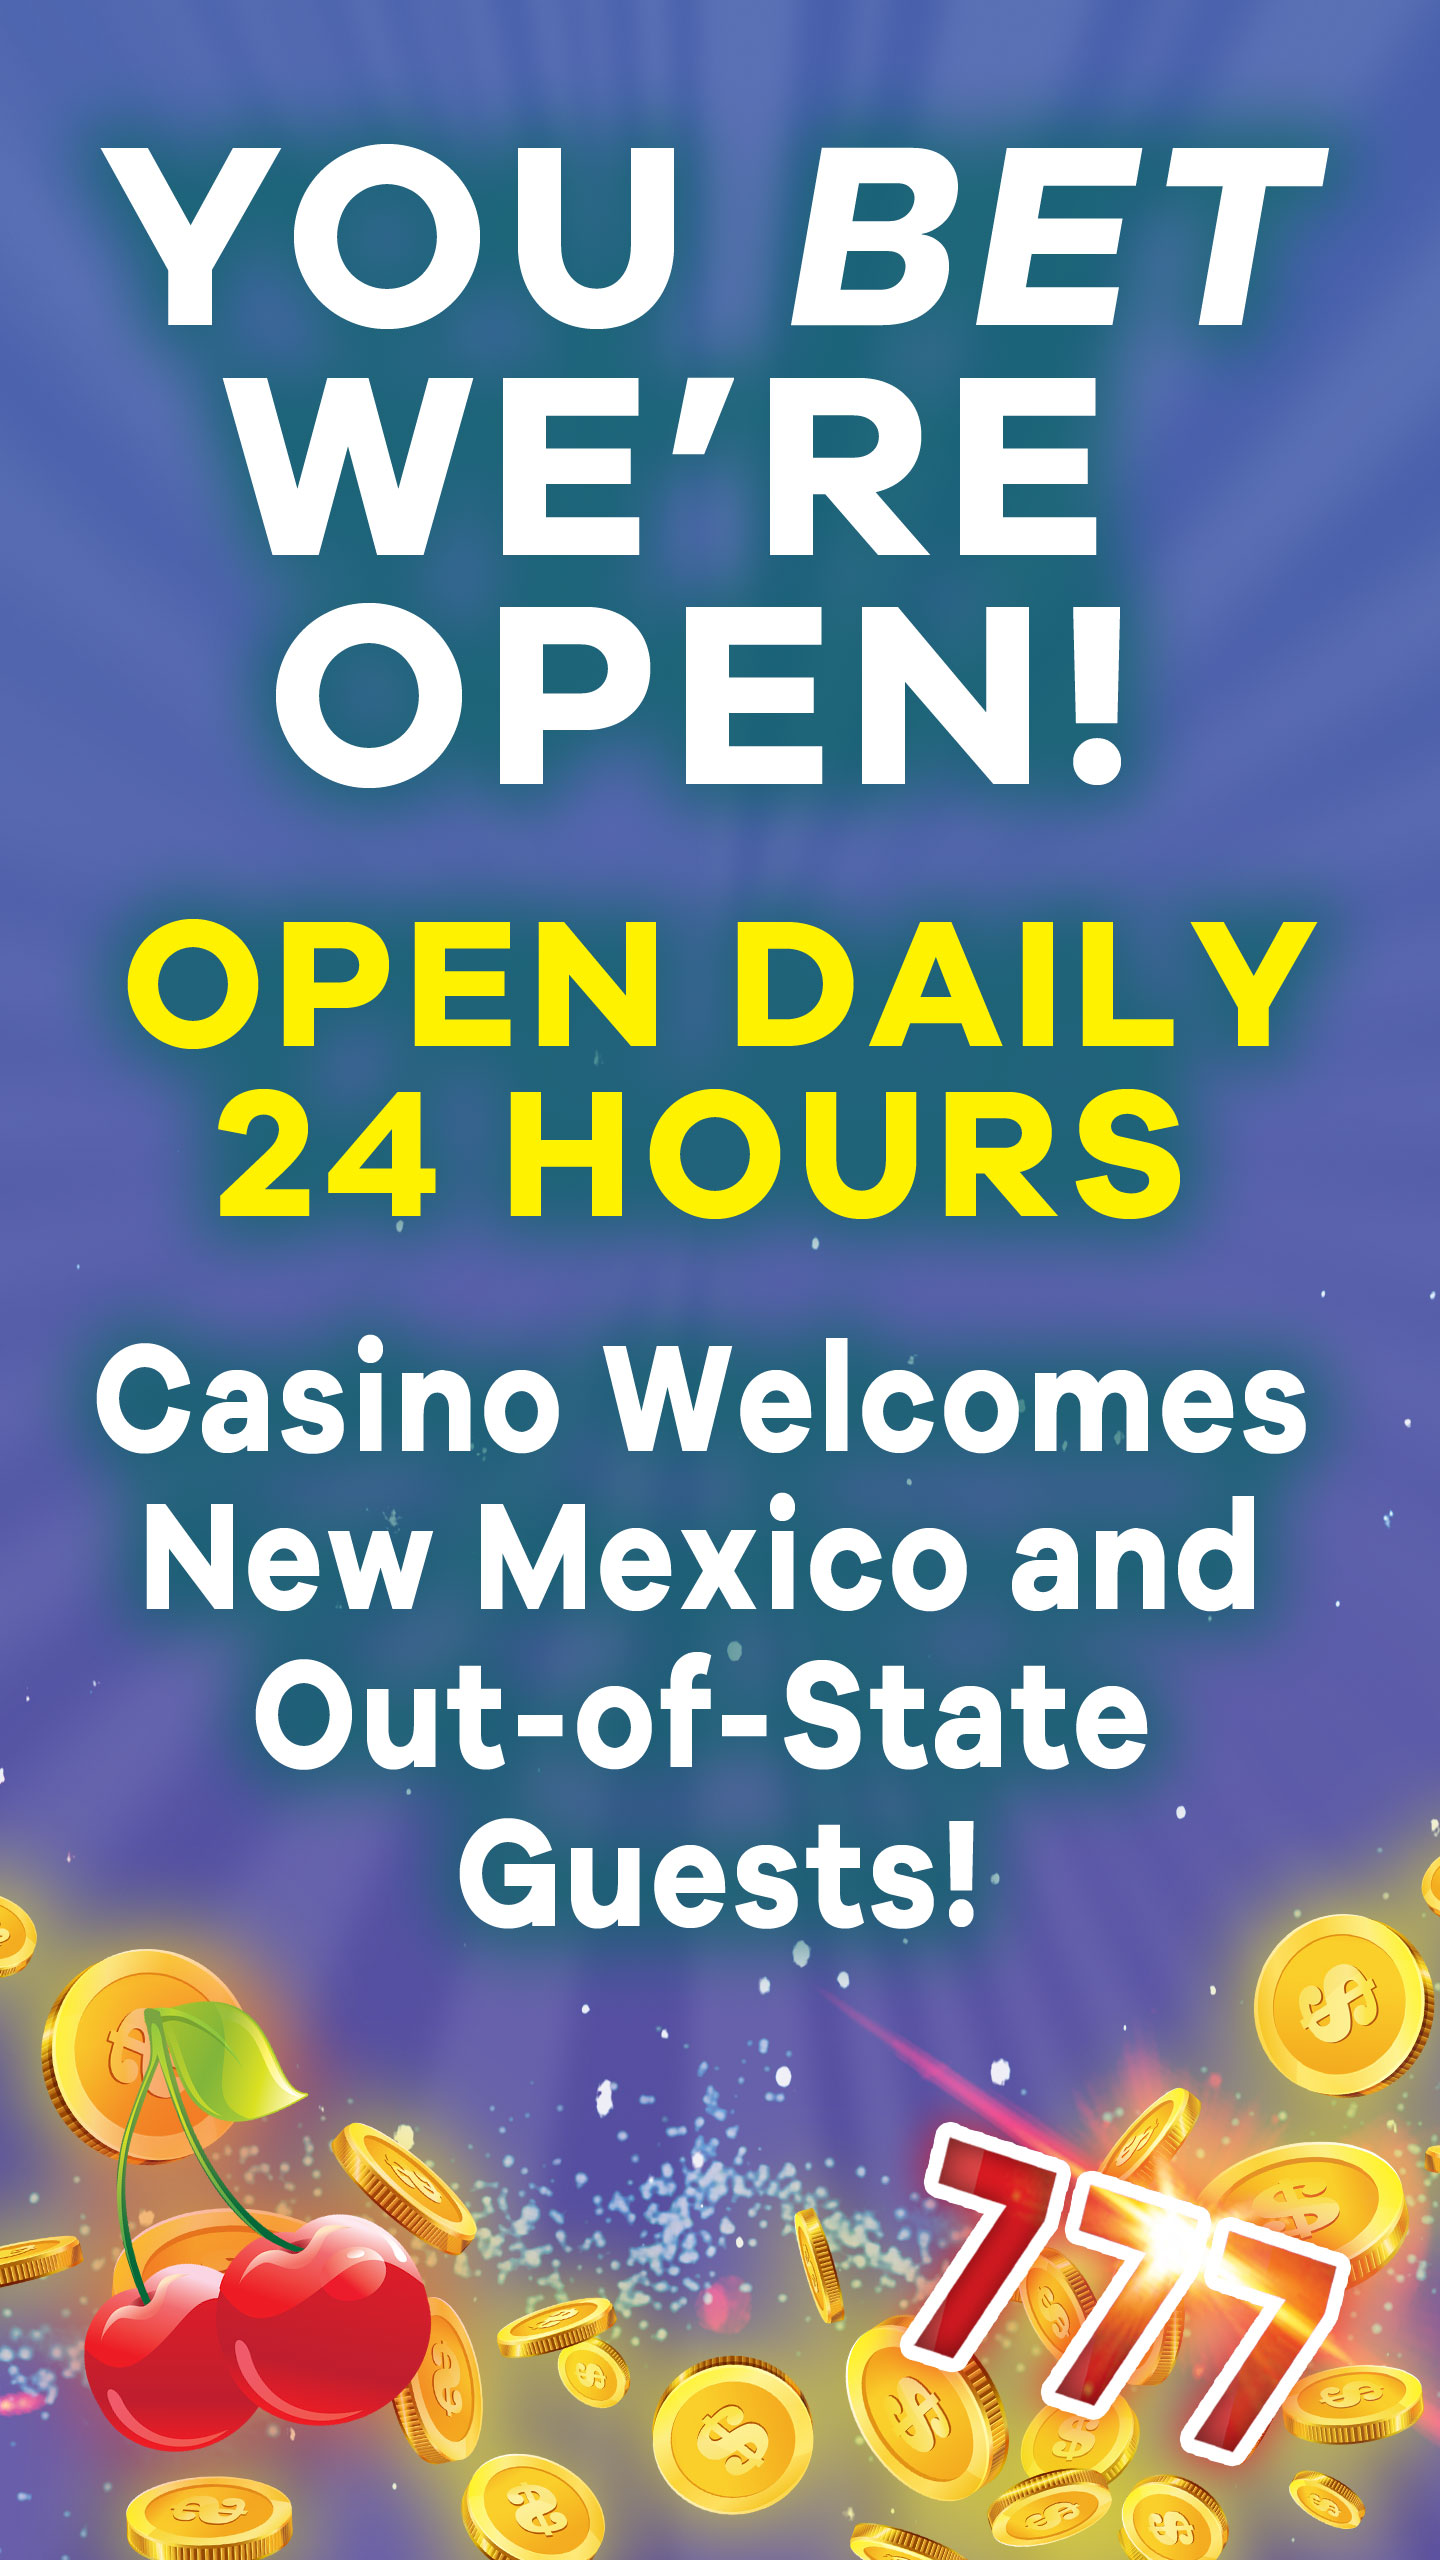 You Bet We're Open!